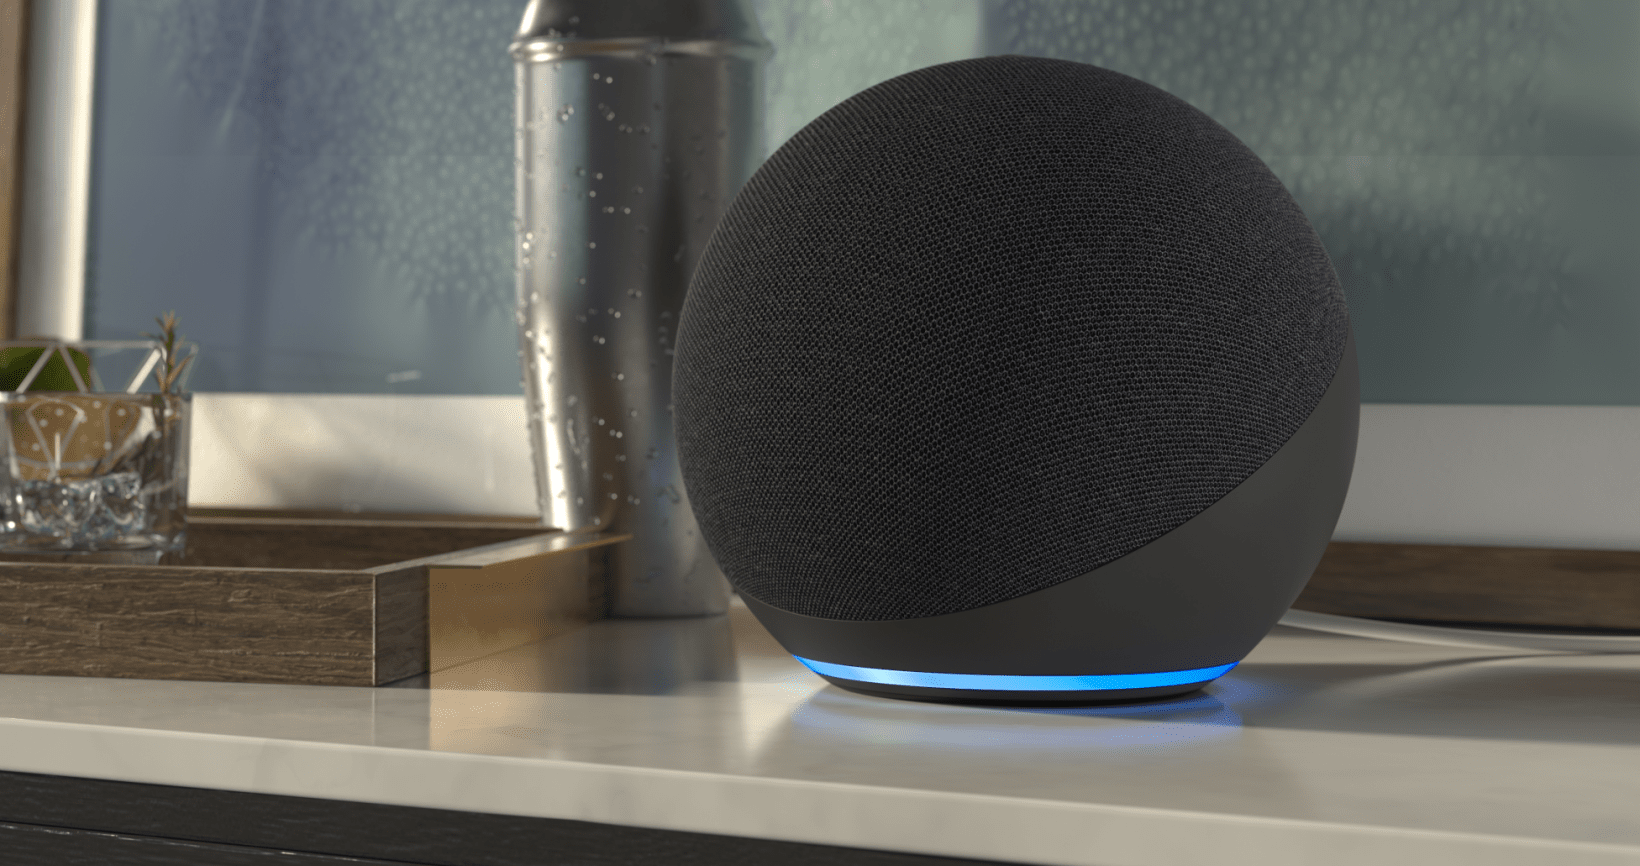 Amazon's new Echo is a cute glowing orb with faster response times